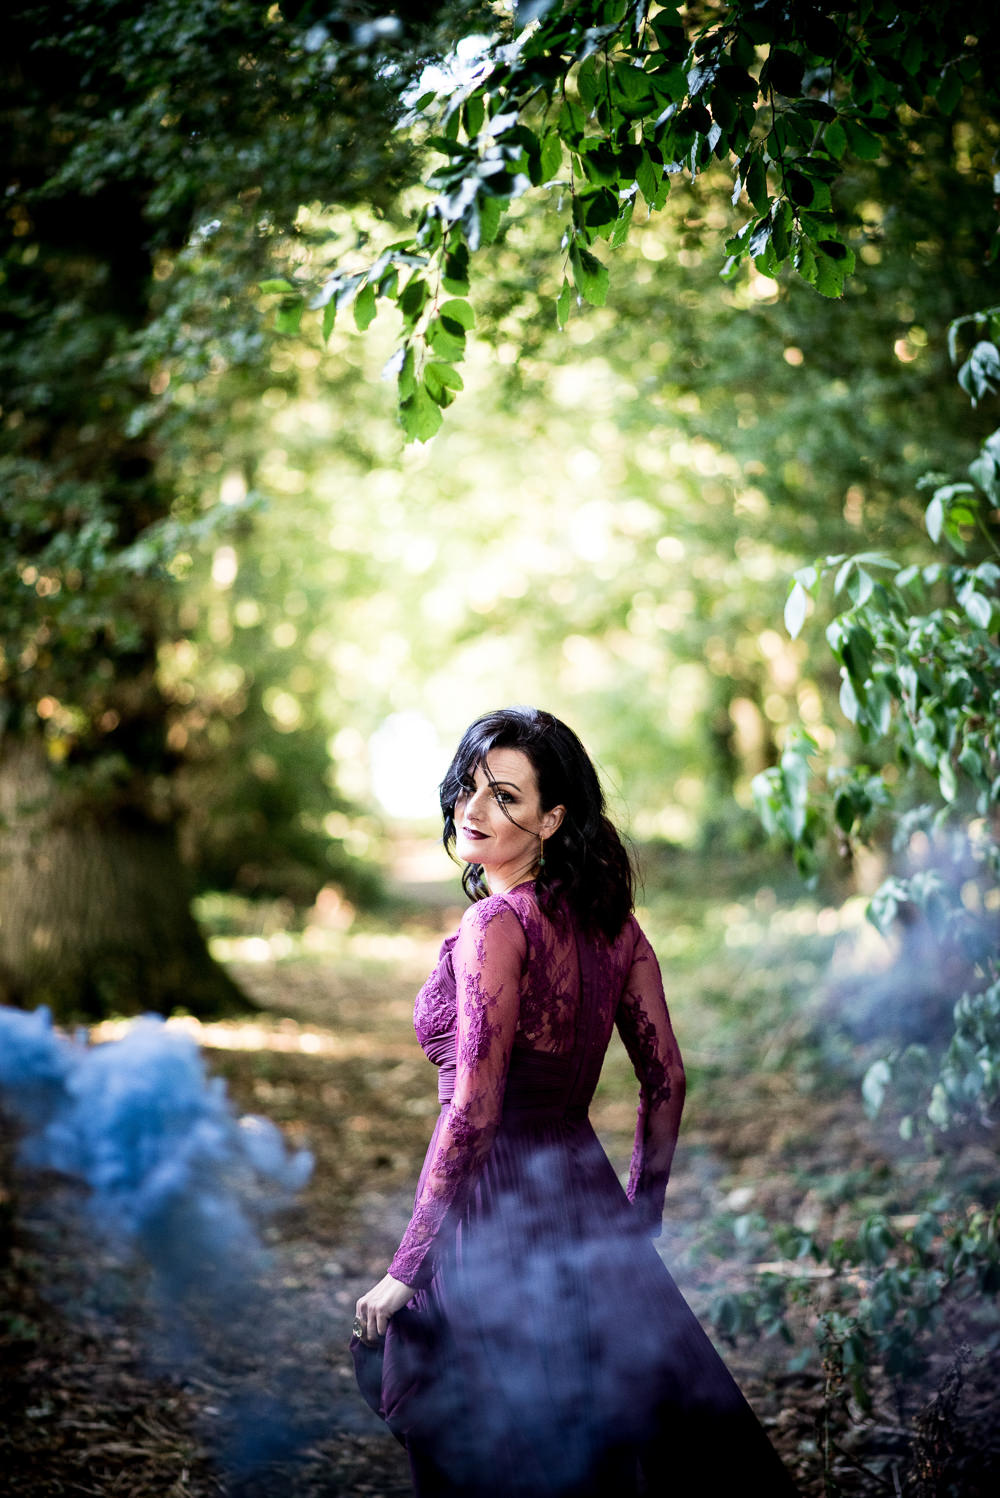 Deep Purple Bridesmaid Dress Long Maxi Smoke Bomb Ethereal Magical Golden Hour Wedding Ideas Dhw Photography